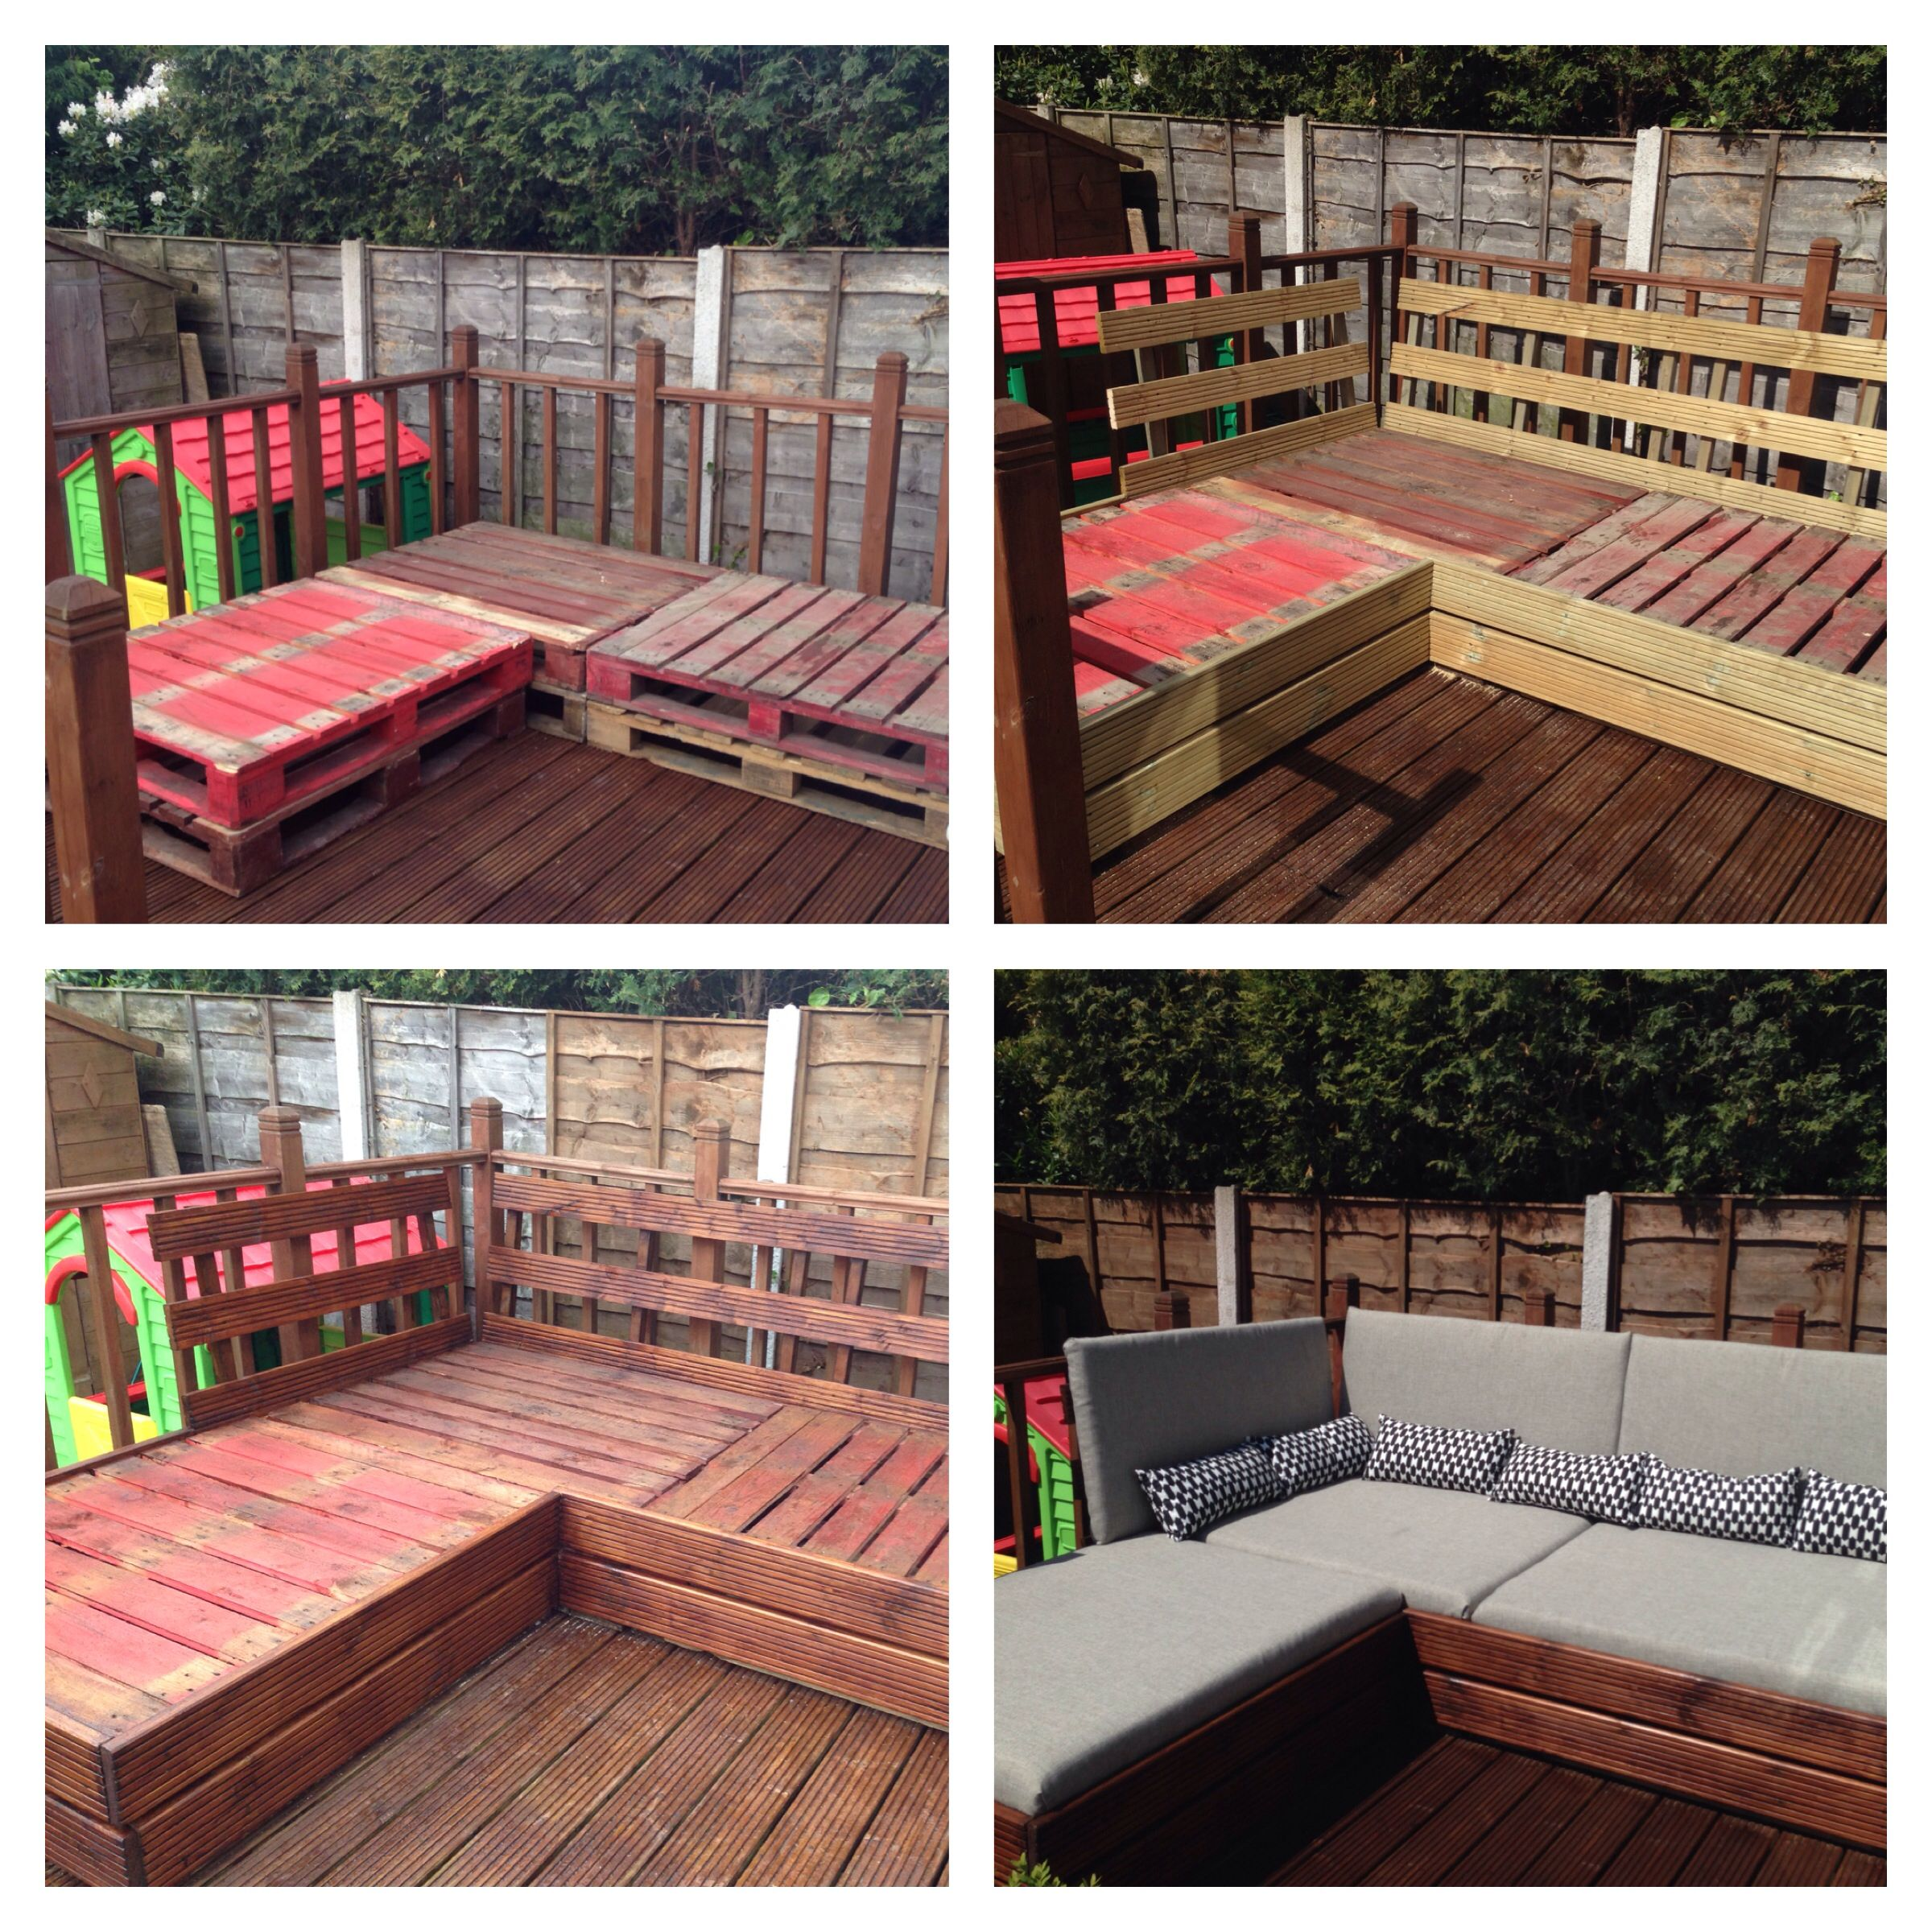 Patio Furniture Made From Pallets And Decking Boards All Made By